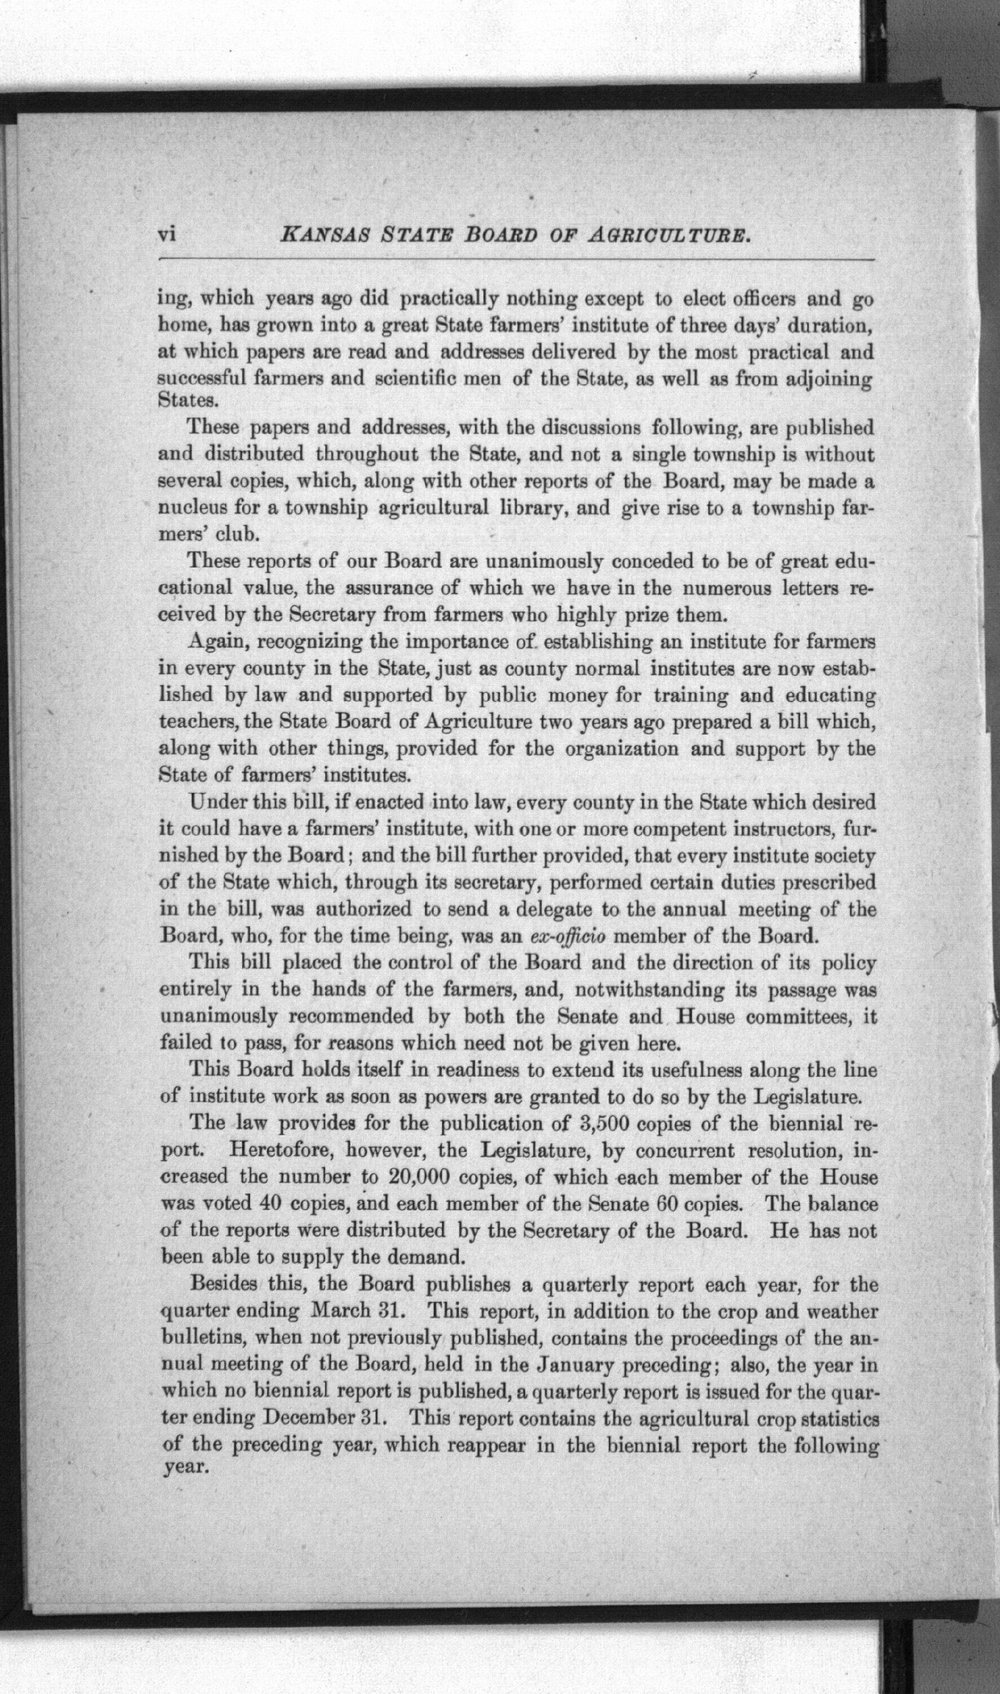 Eighth biennial report of the Kansas State Board of Agriculture, 1891-1892 - vi